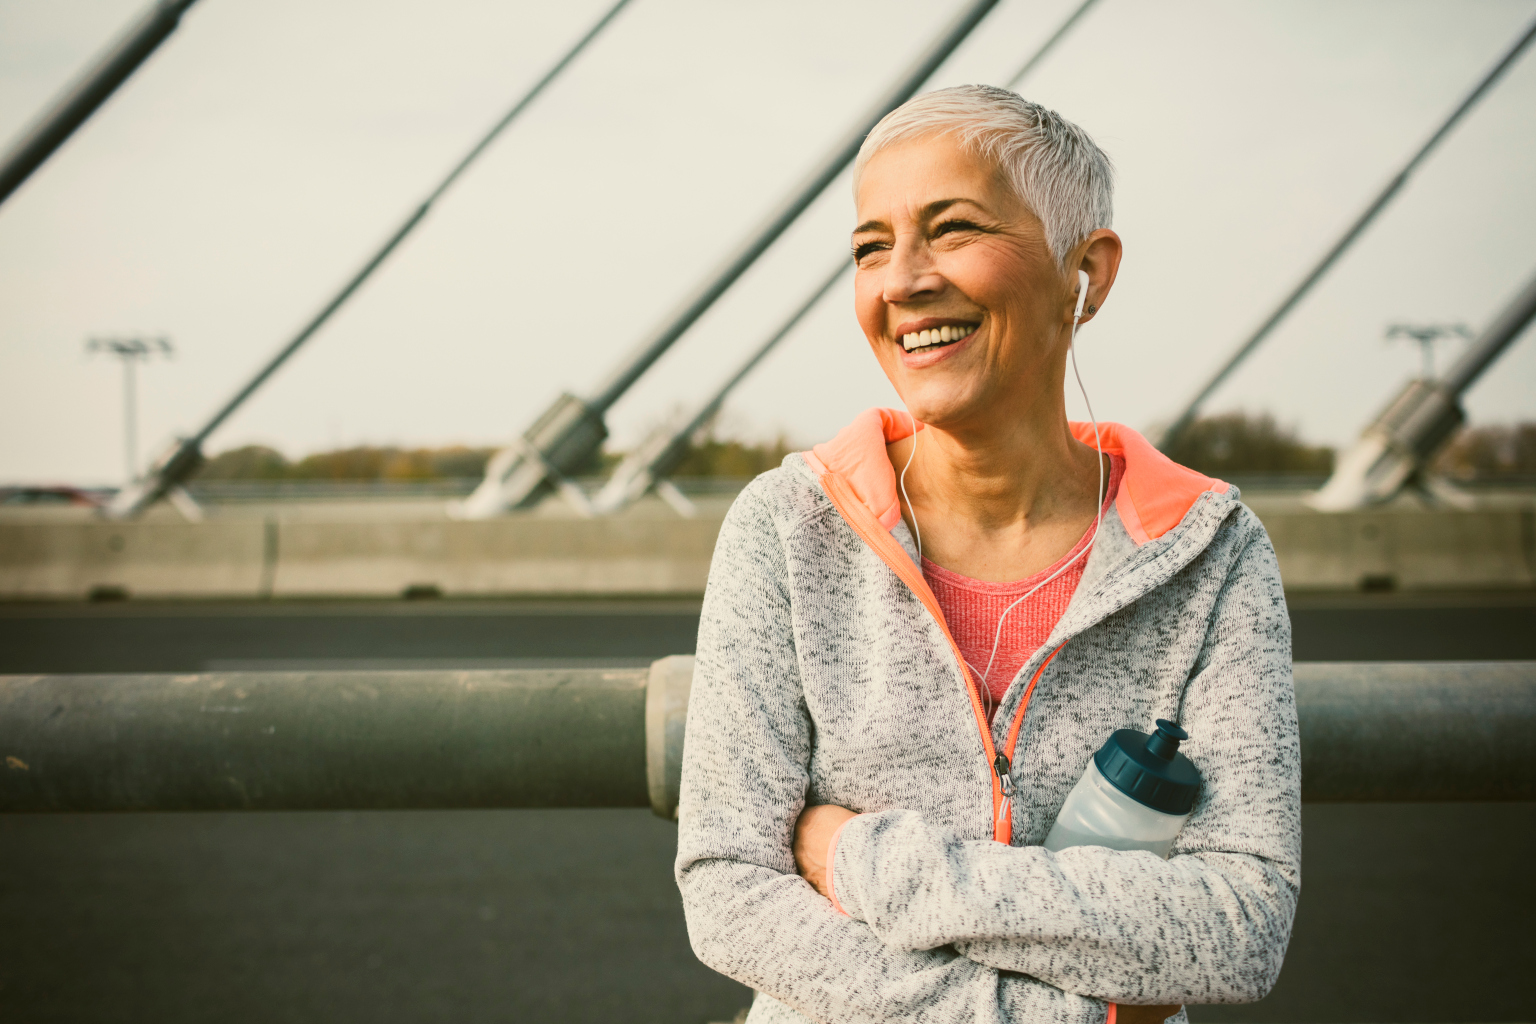 The 9 Best Workout Clothes for Women Over 50